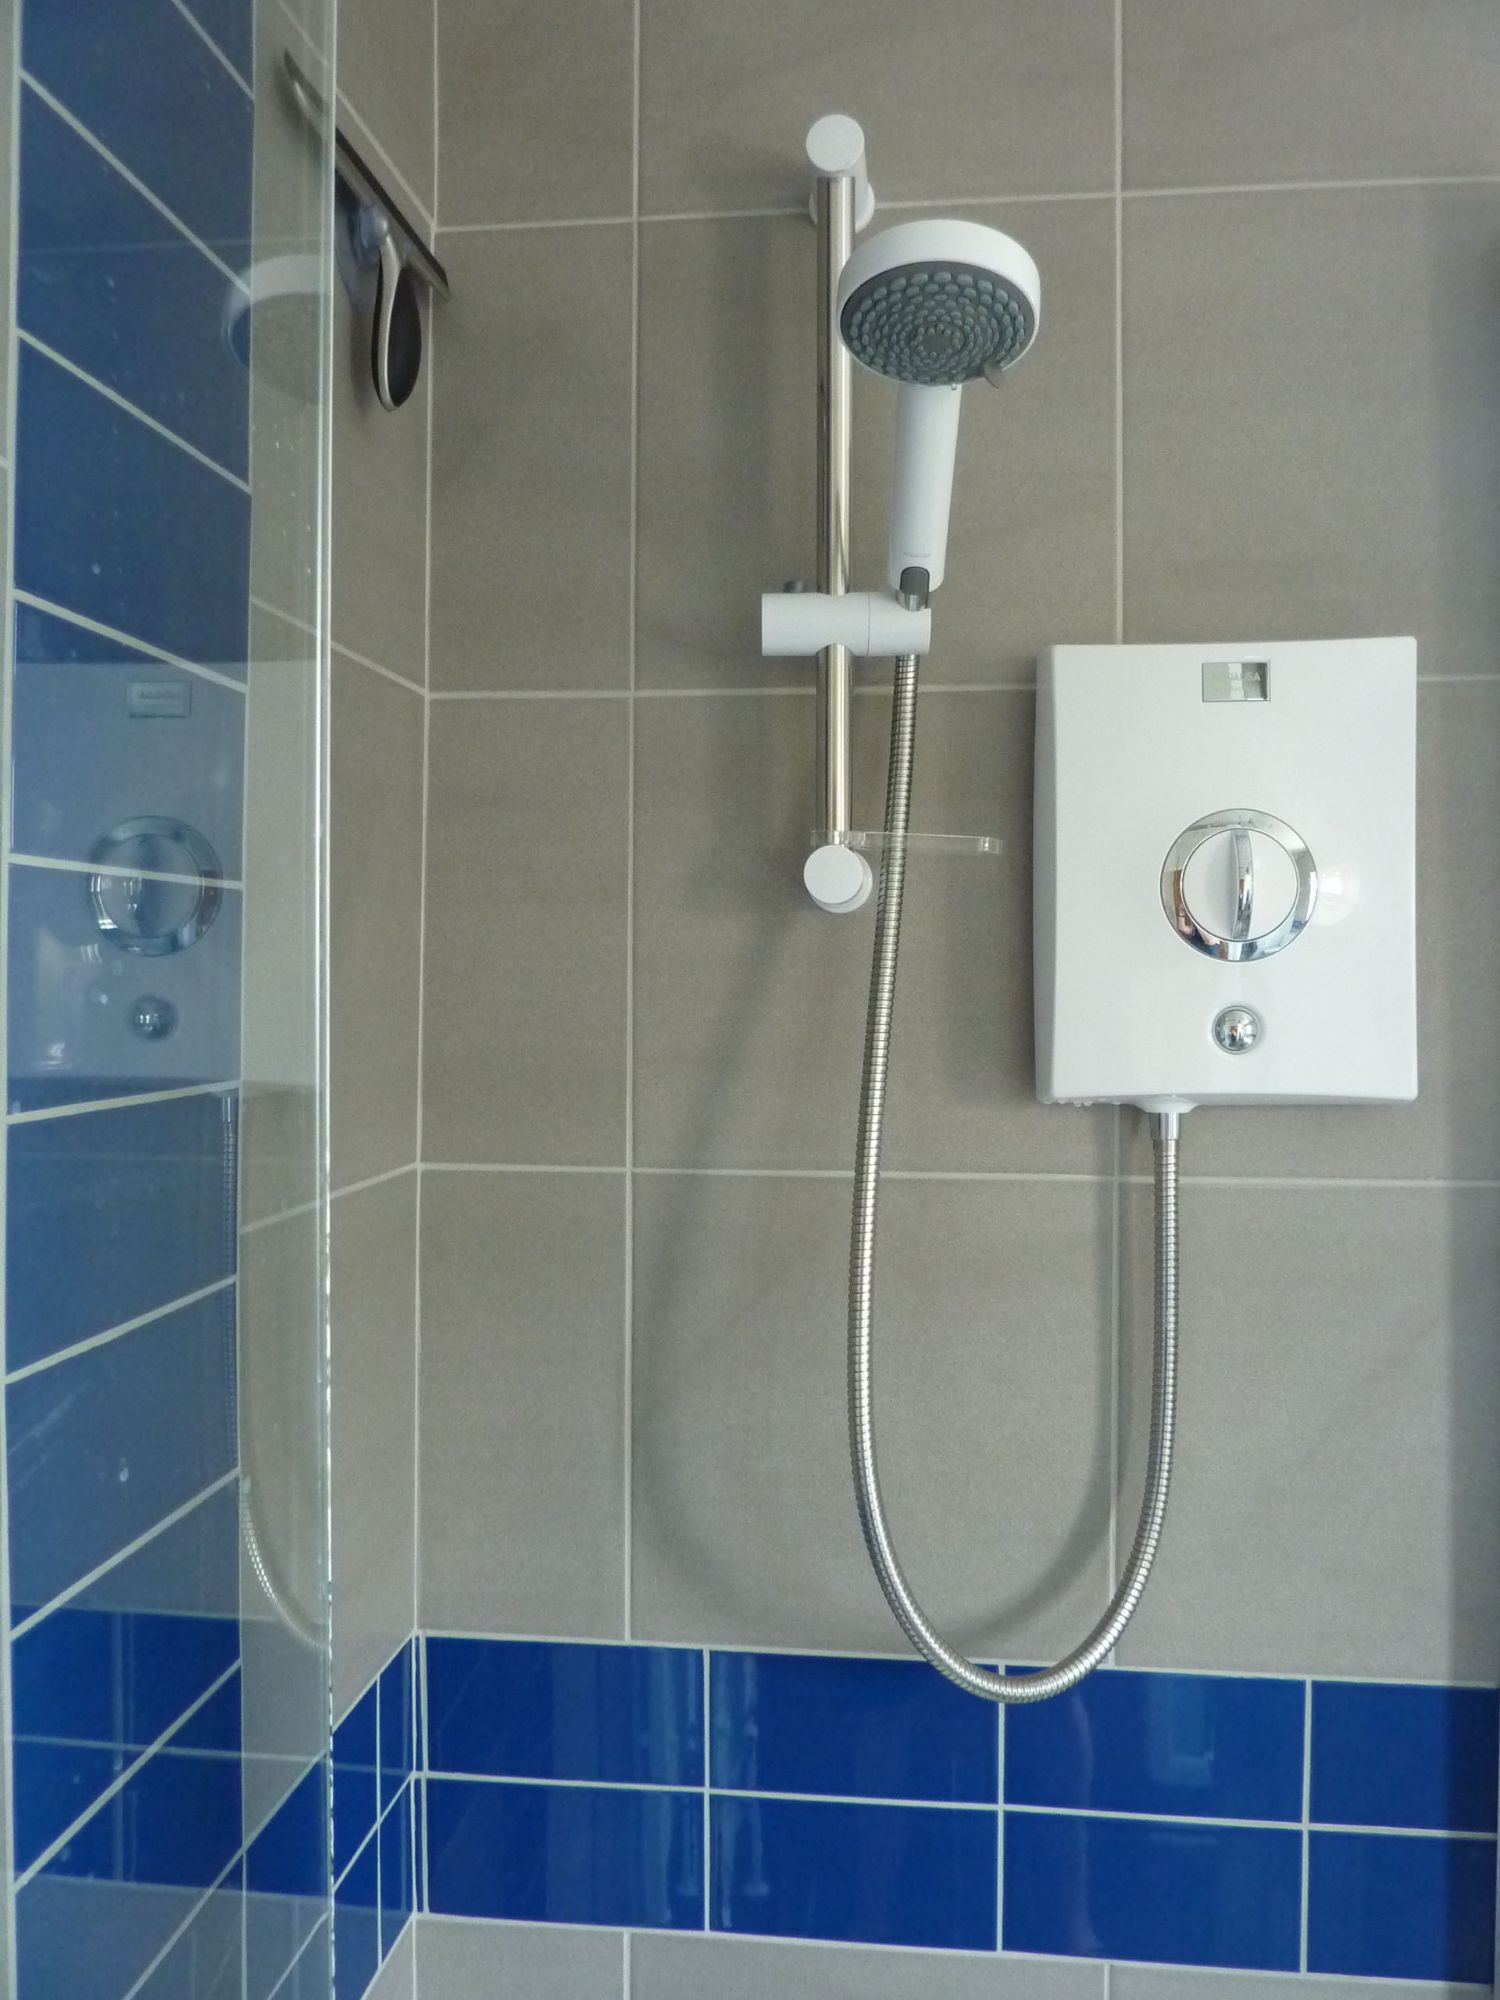 electric shower grey tiles blue brick pattern tiles